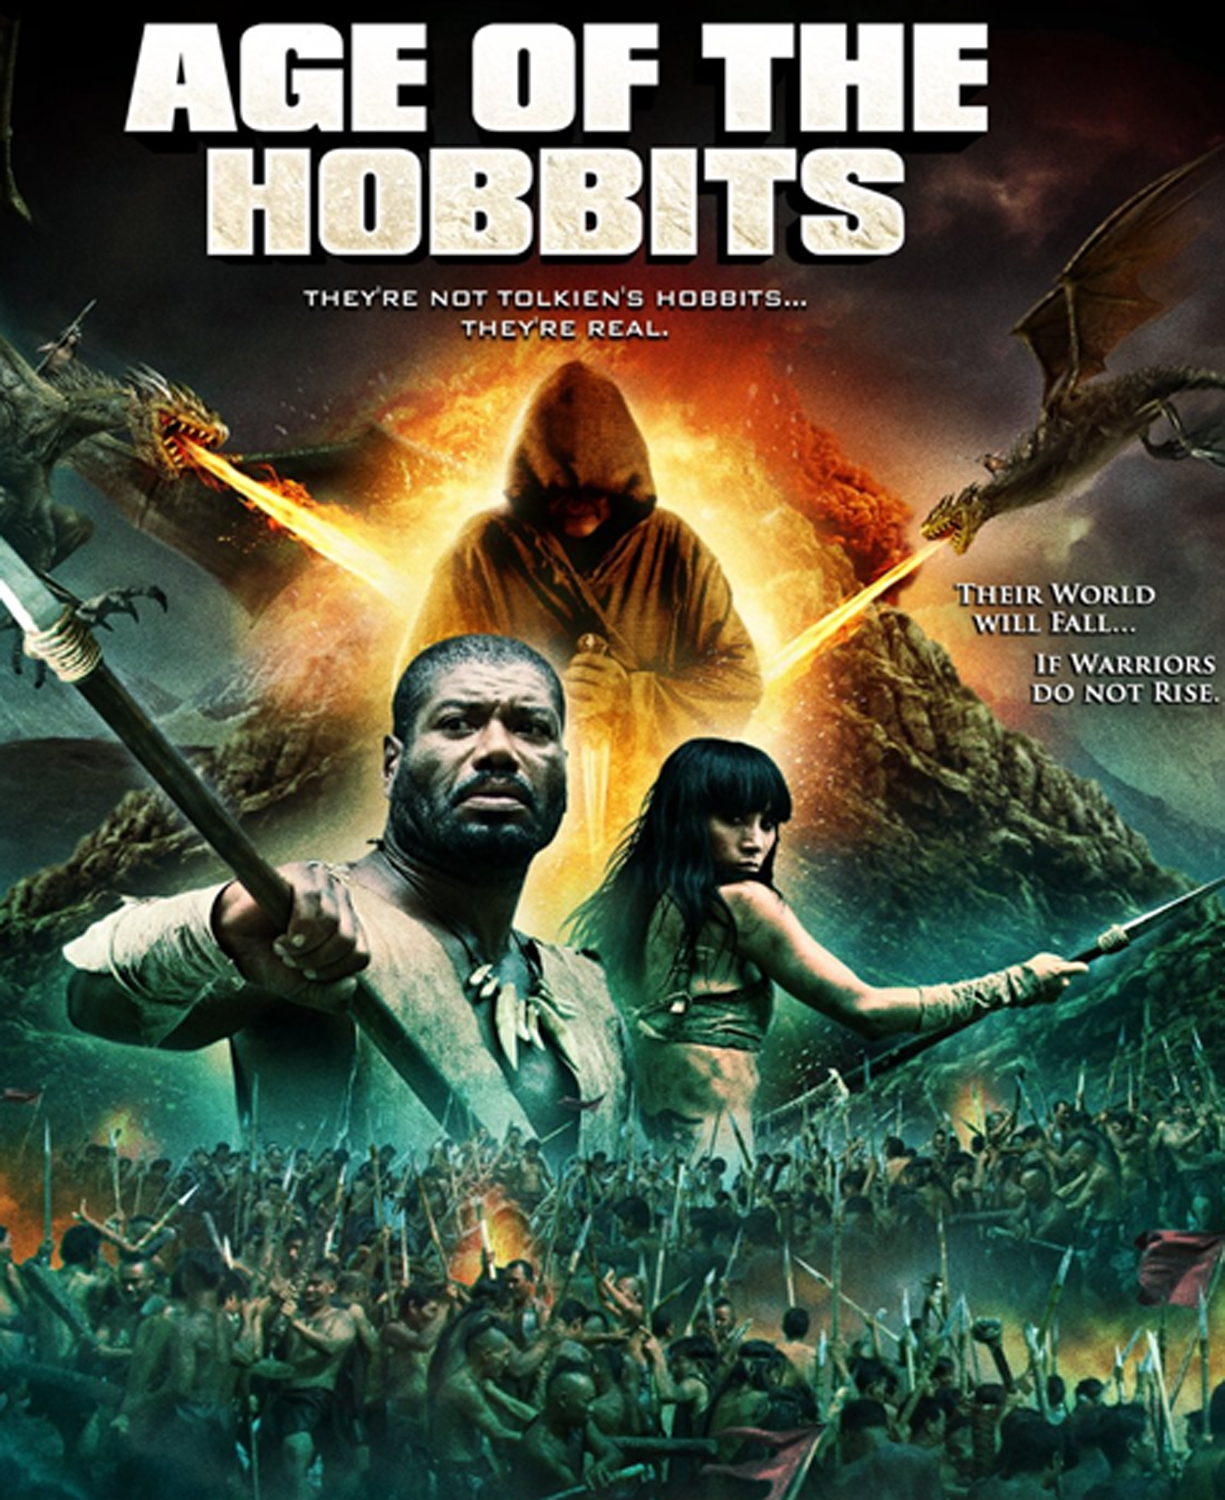 Age of the Hobbits 2012 Hindi Dual Audio 330MB BluRay ESub Download